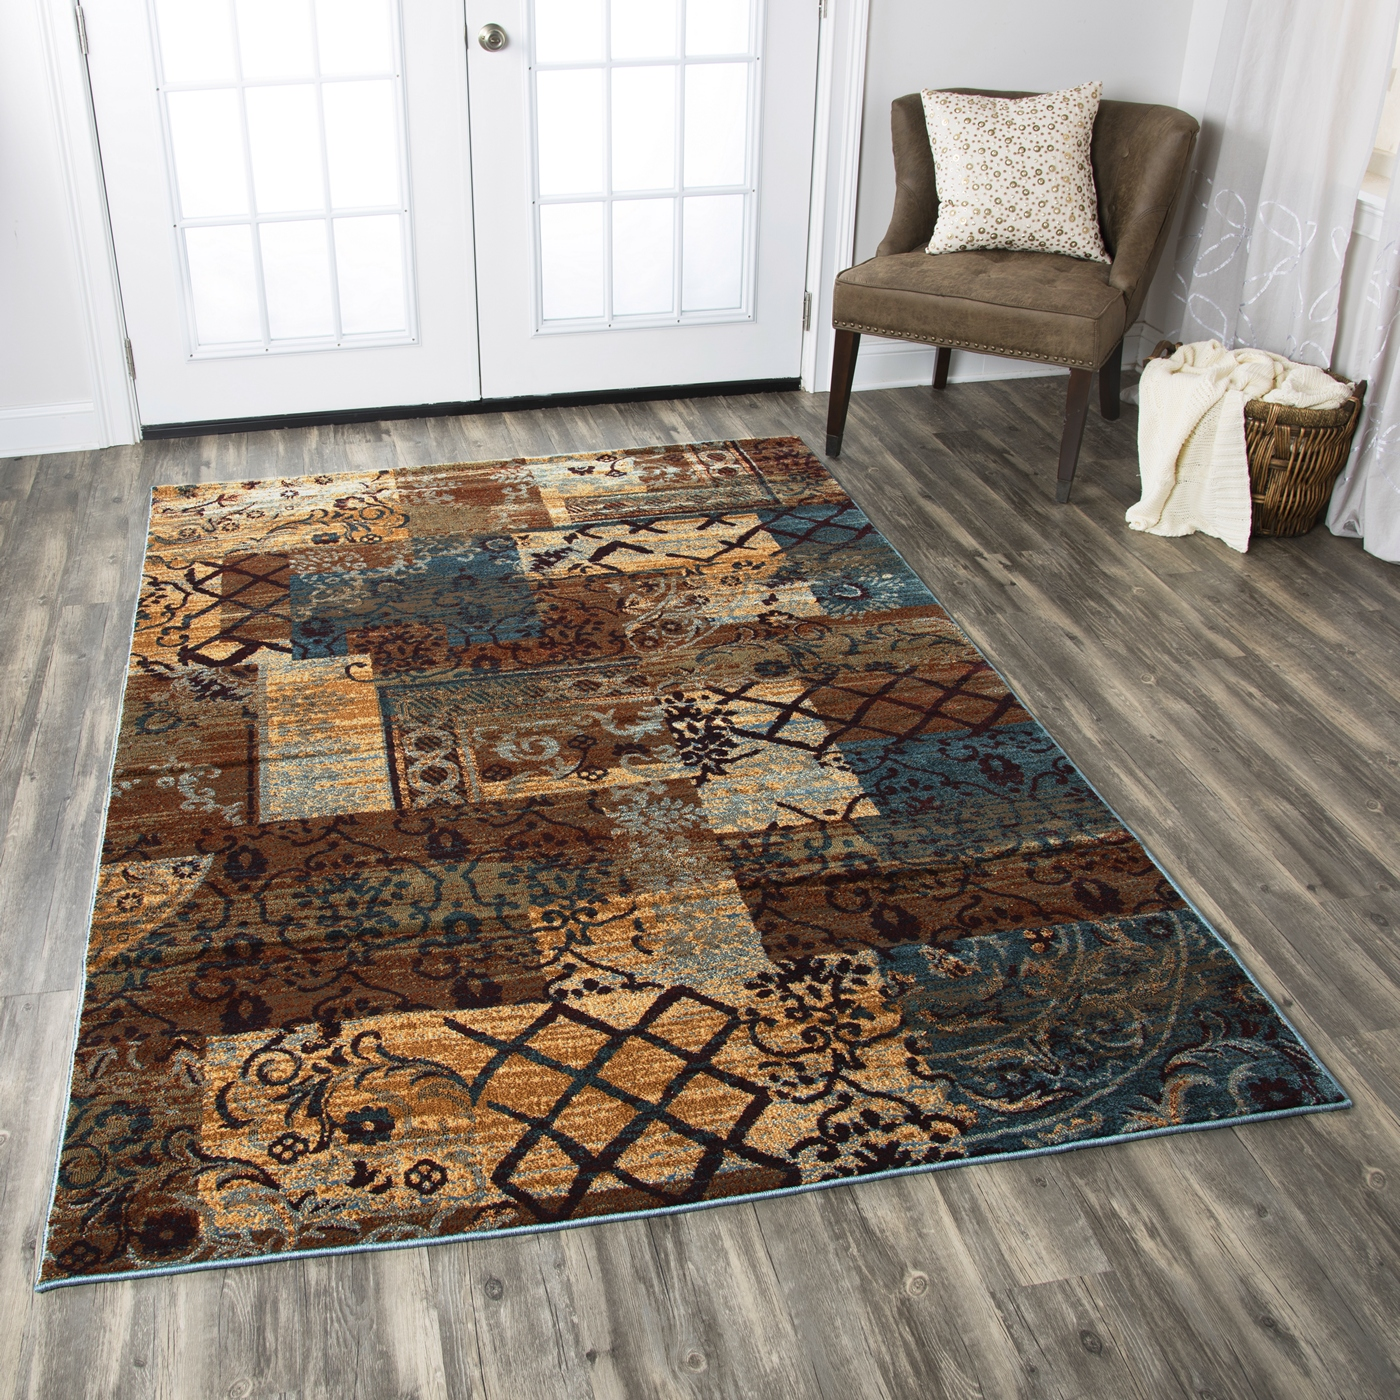 Shop Linon Moroccan Mekenes Camel Brown Rug: Bellevue Rustic Patchwork Area Rug In Beige Blue Burgundy